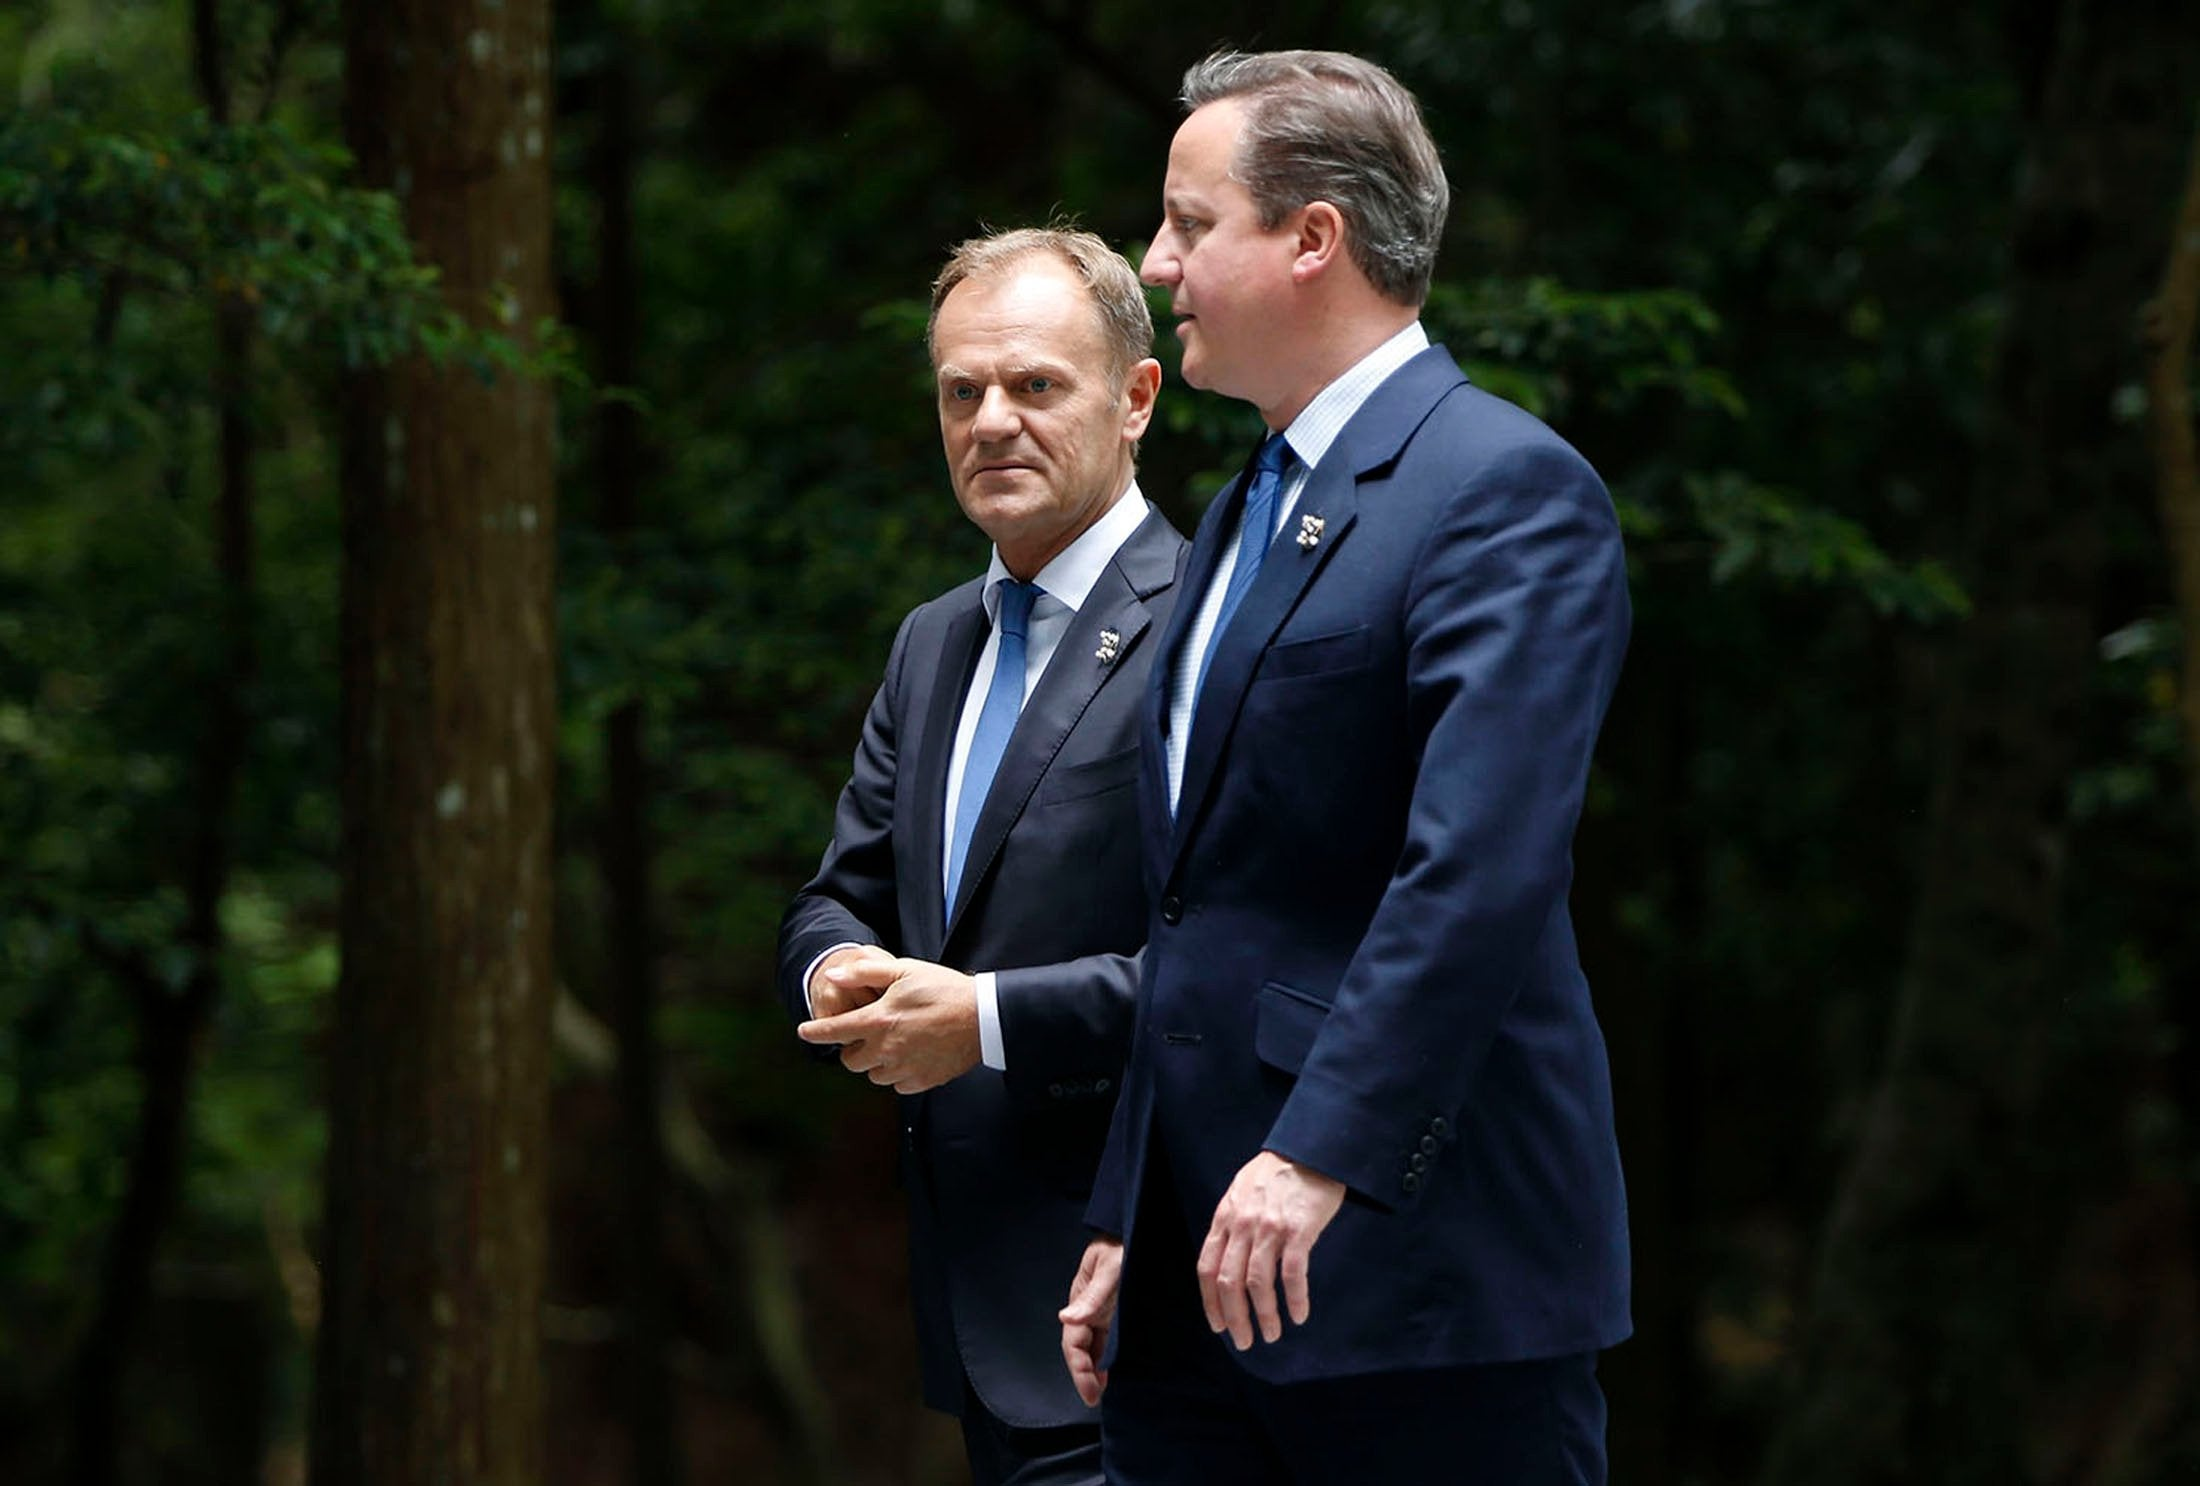 EU president Donald Tusk says he told David Cameron to 'get real' over his 'stupid' Brexit referendum